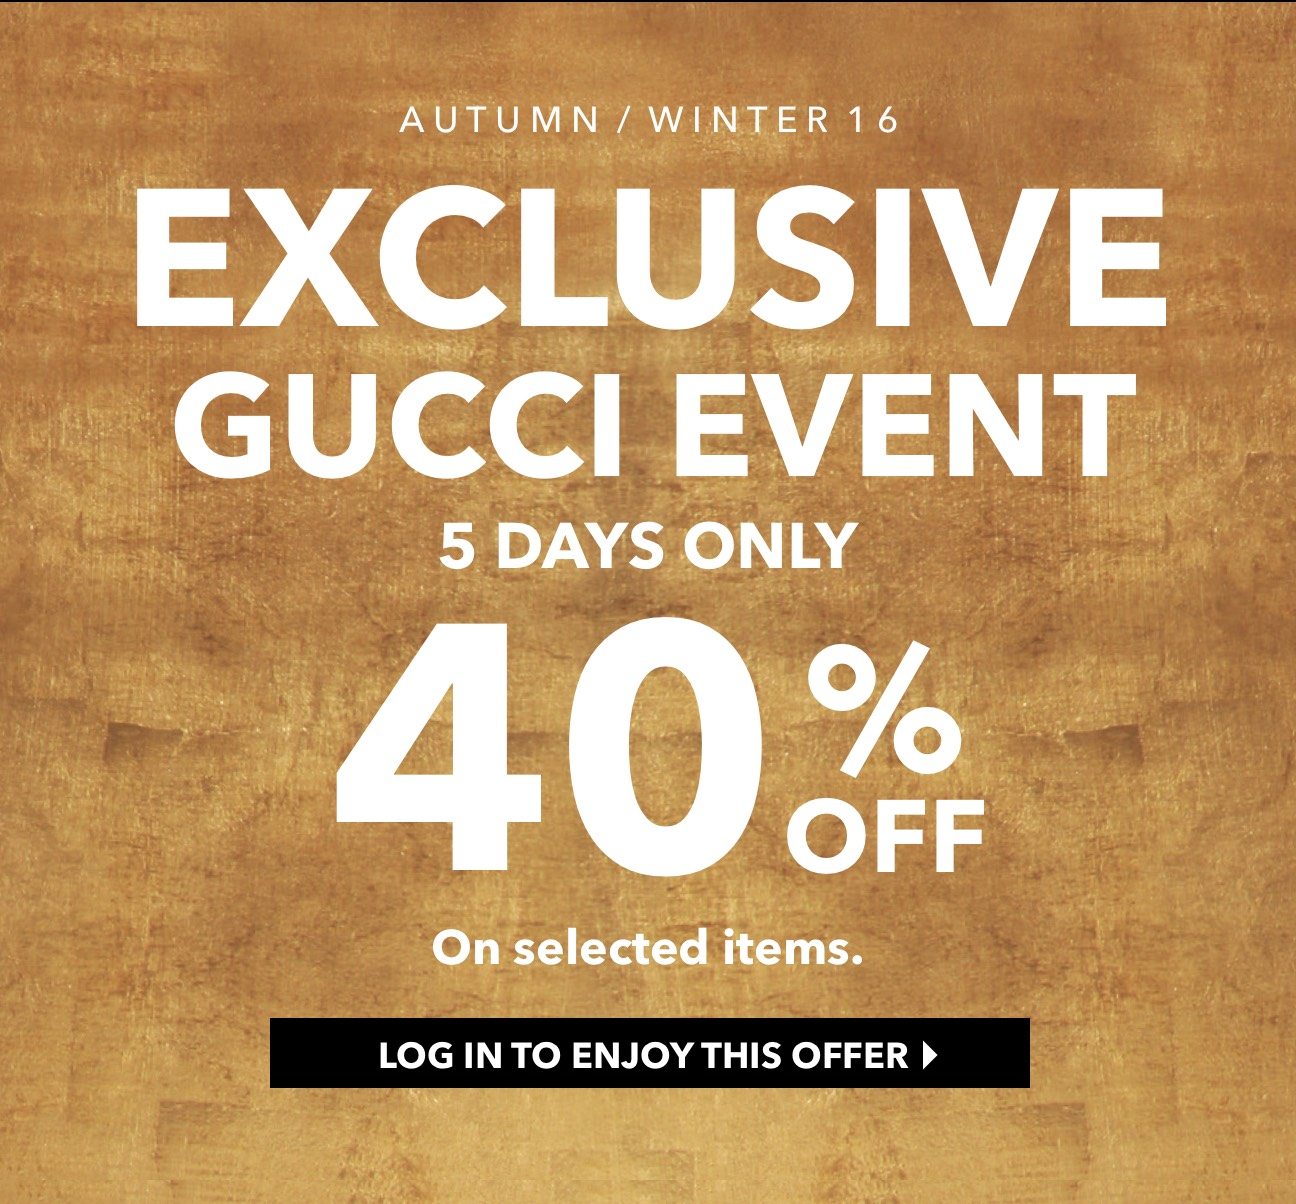 Gucci Private Sale >> Childsplayclothing Uk Gucci Private Sale 40 Off Milled